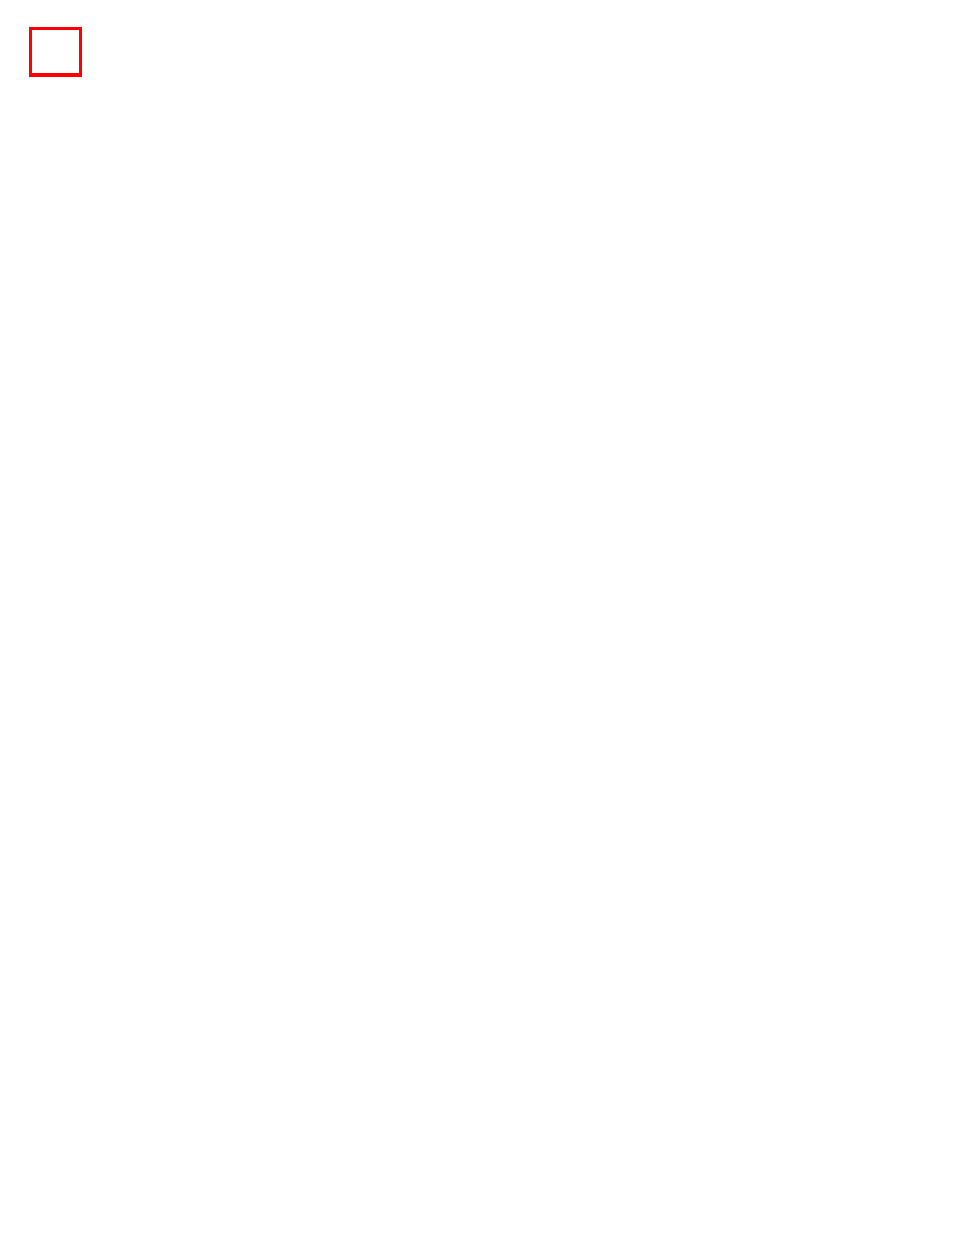 john deere 318 user manual 440 pages also for 316 420 rh manualsdir com John Deere 318 Attachments JD 318 3-Point Hitch